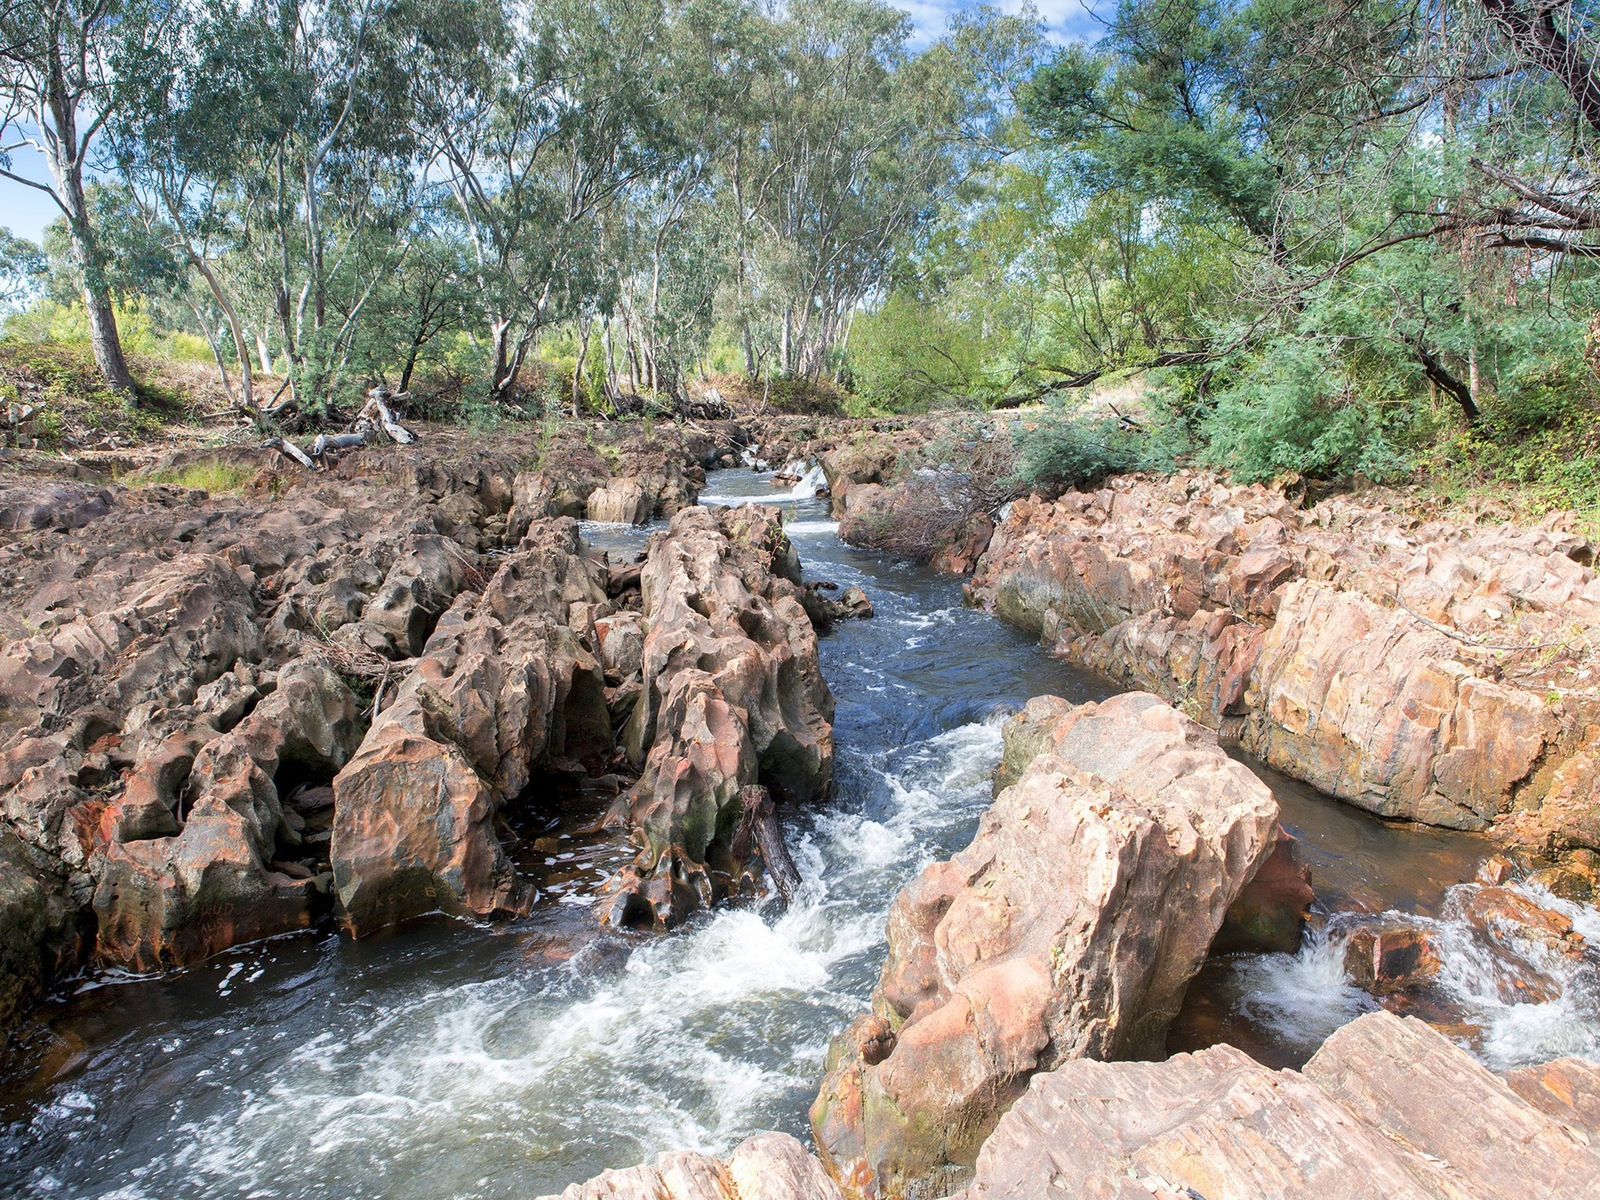 A small section of the river flowing through a section of red and orange water eroded rocks.